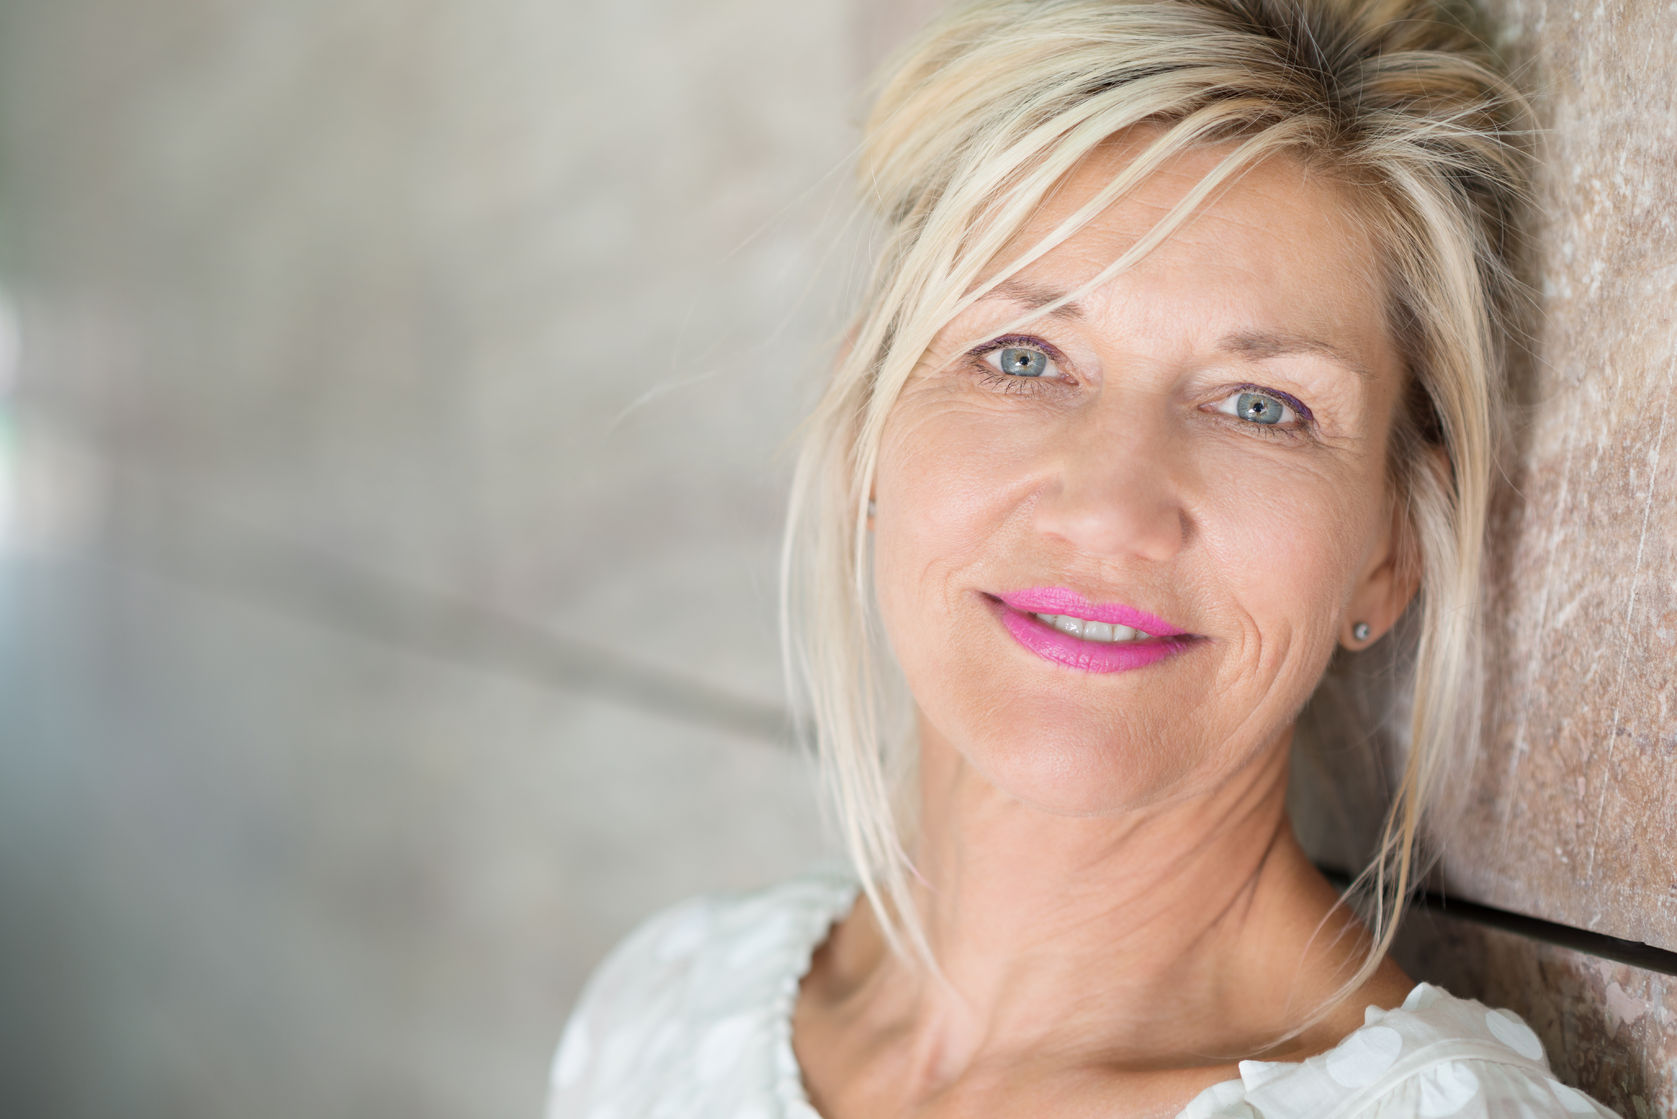 Attain a more youthful look with facelift surgery